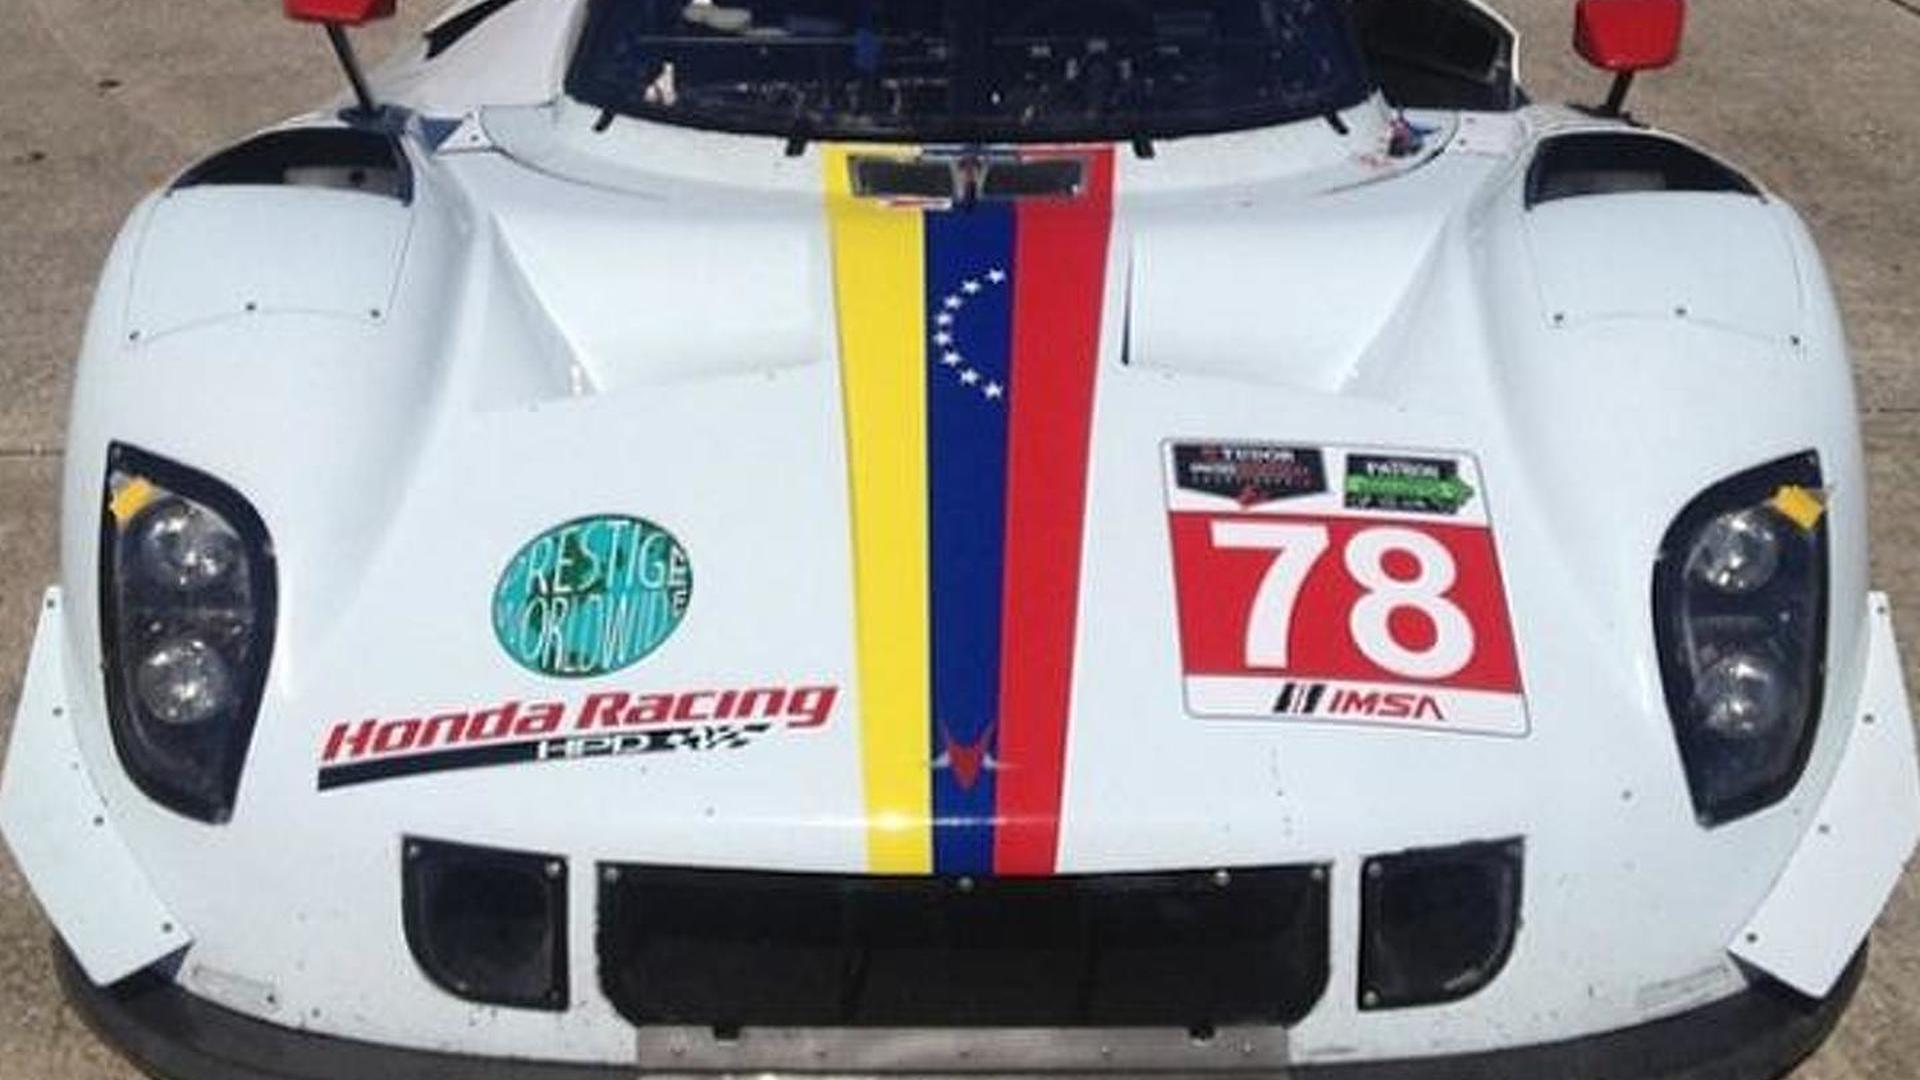 Honda to compete in the Daytona Prototype class